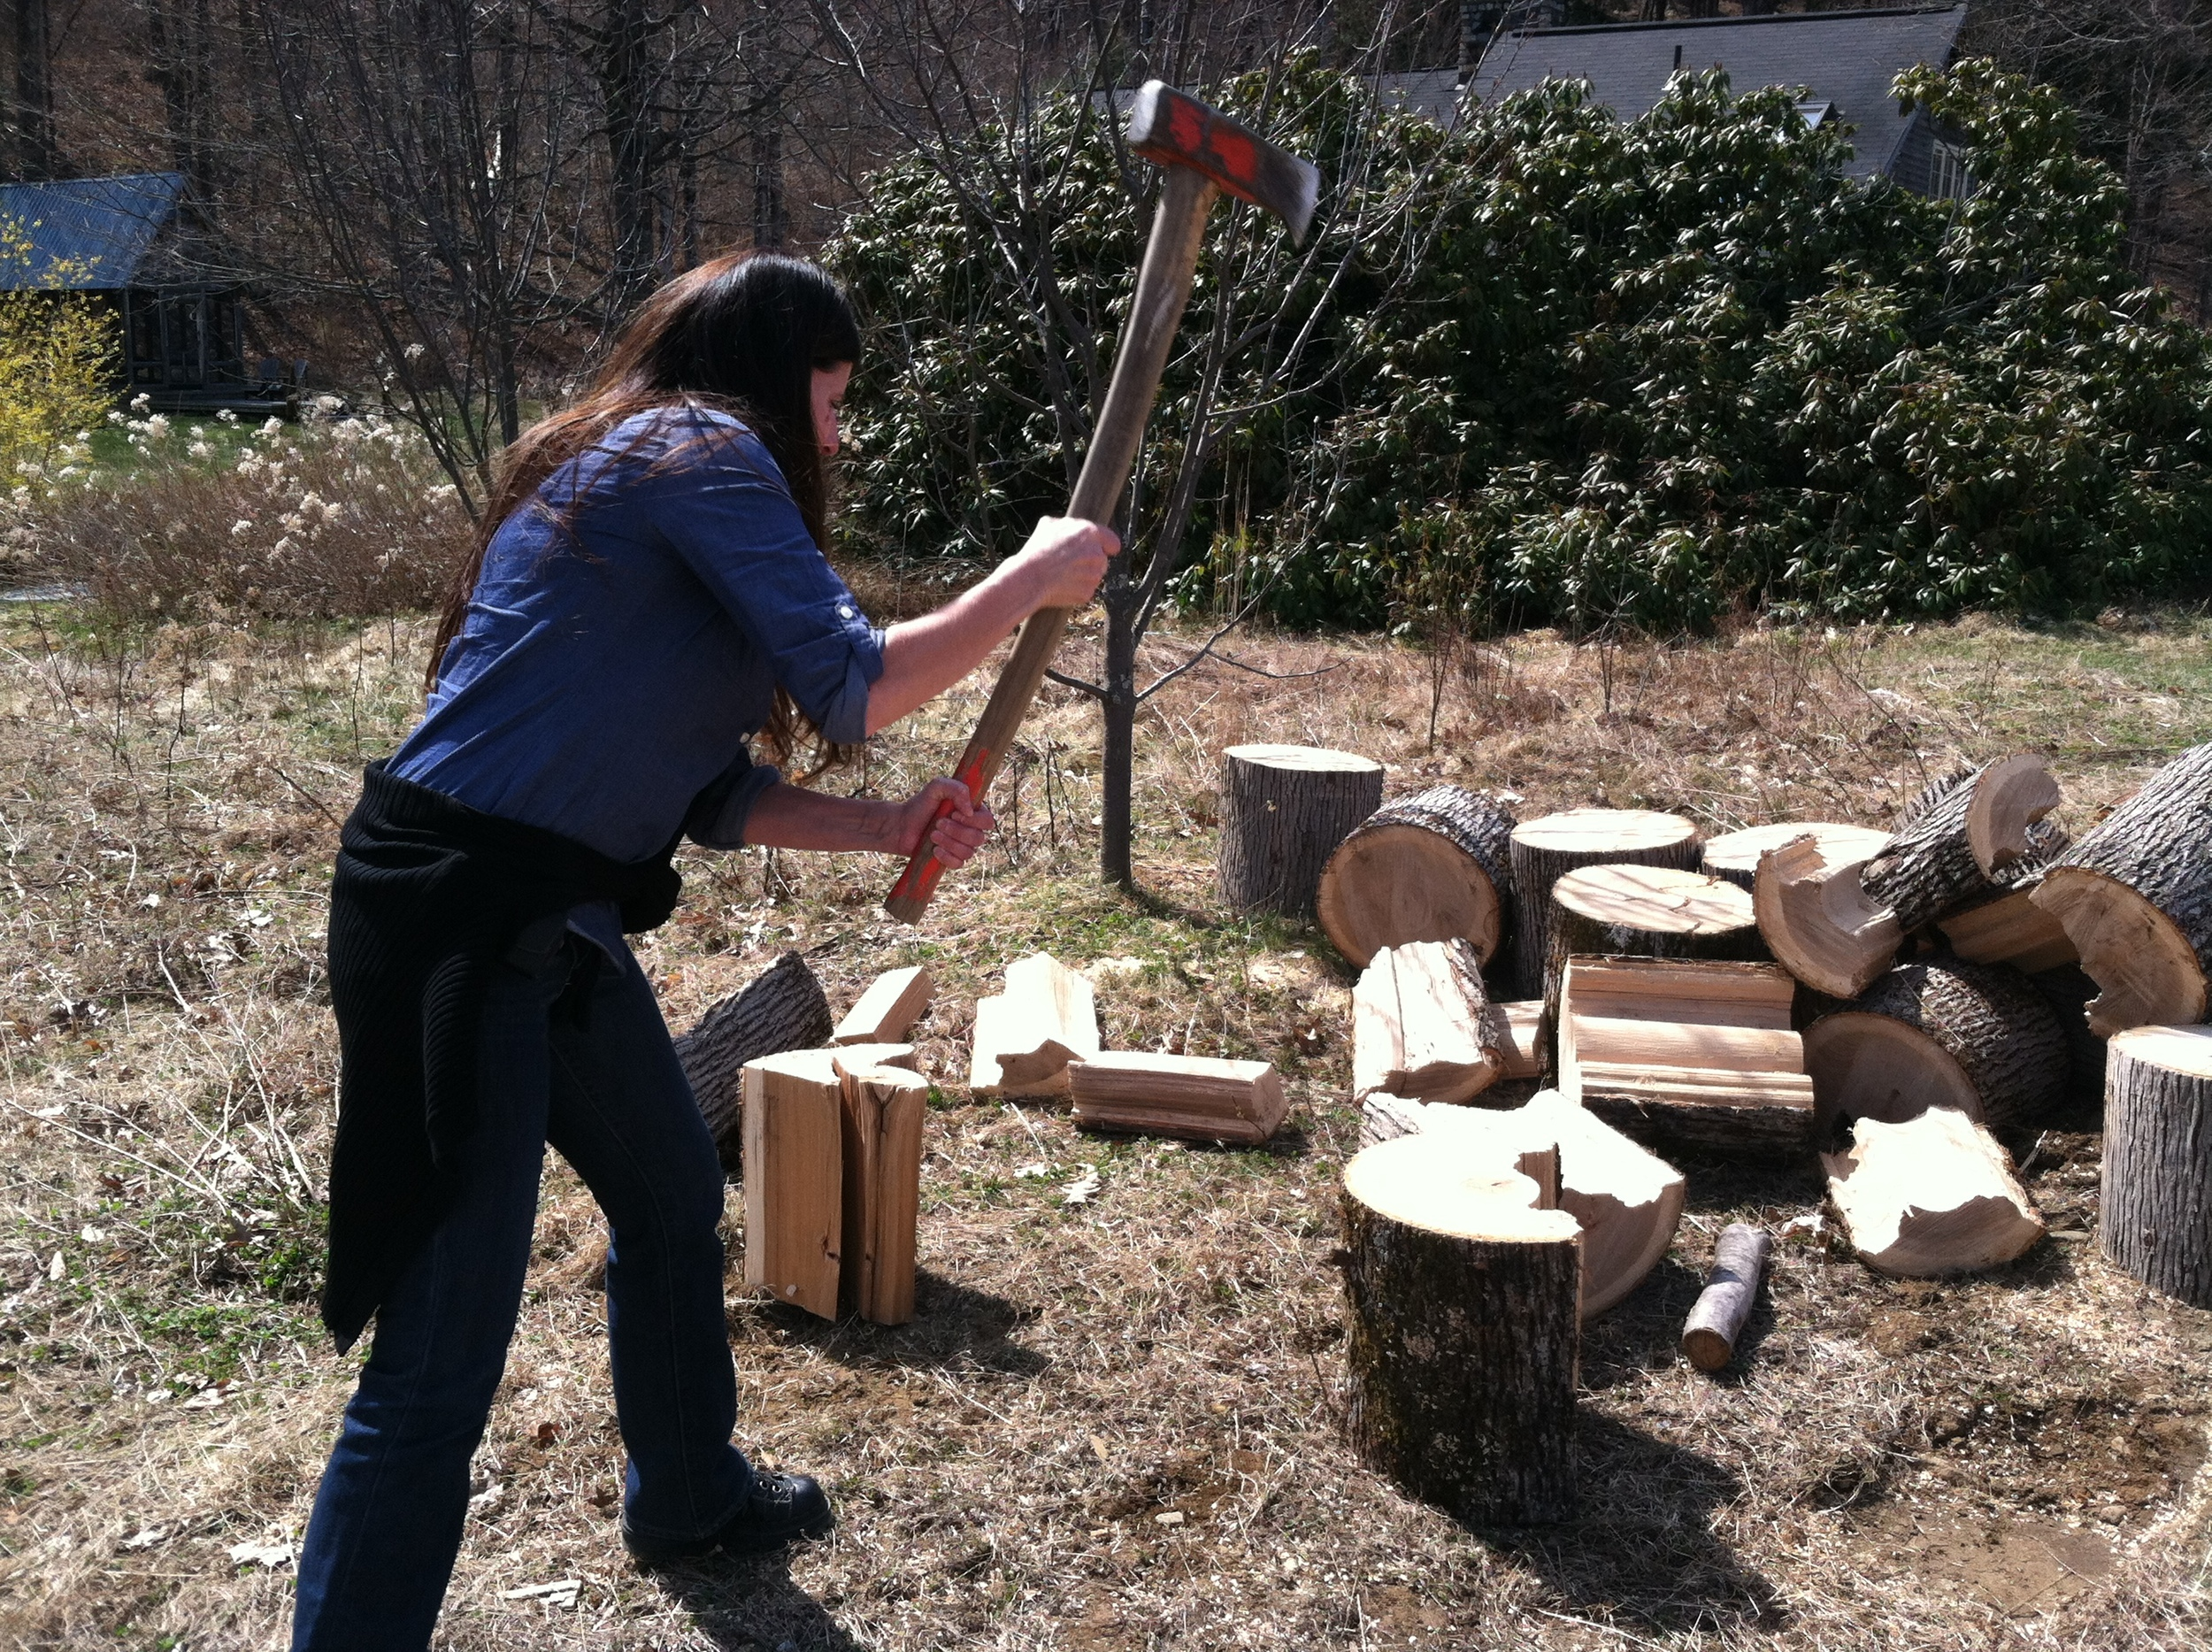 Me chopping wood - photo by Tom Eaton